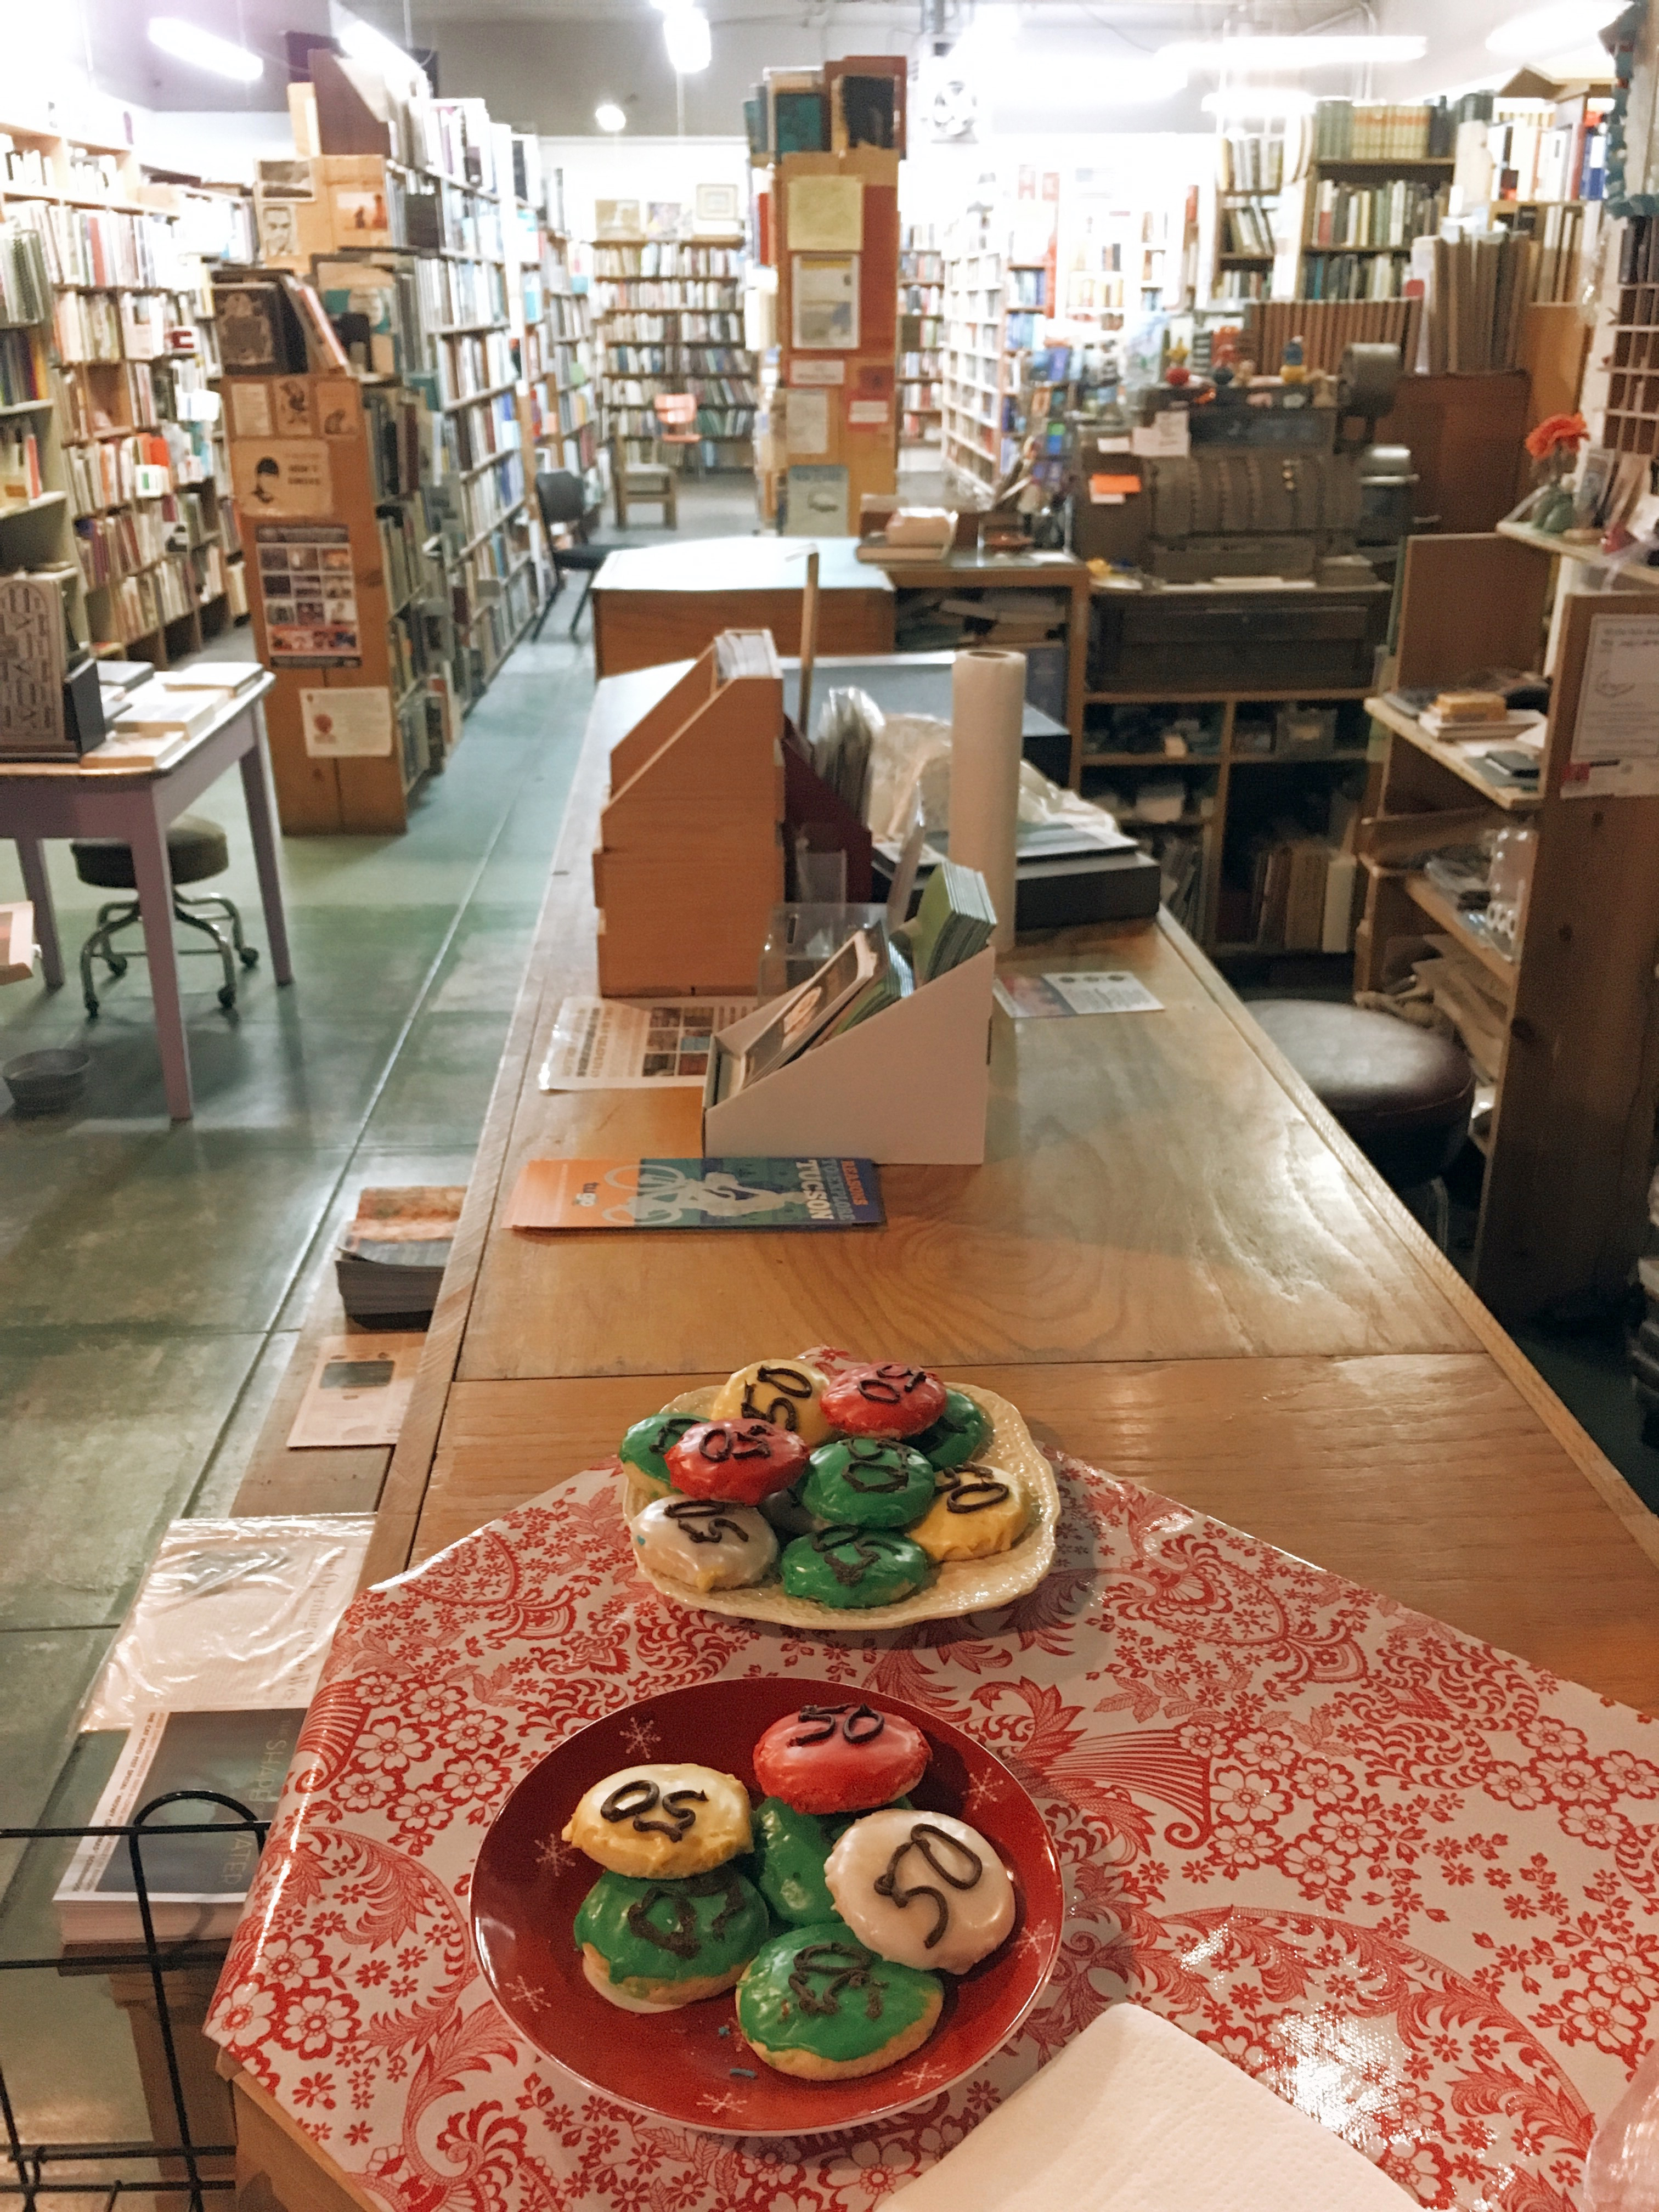 Plates of cookies sit on the counter at the Book Stop, which is celebrating its 50th anniversary.